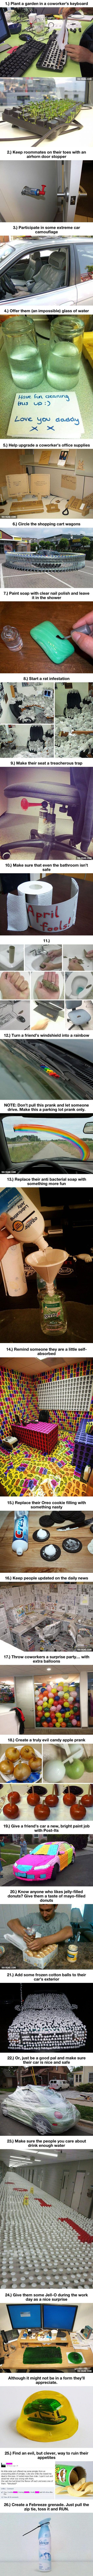 26 Most Brilliant April Fool's Pranks Ever. Some Are Just Evil! The 26 Most Brilliant April Fool's Pranks Ever. Some Are Just Evil!The 26 Most Brilliant April Fool's Pranks Ever. Some Are Just Evil! Best April Fools Pranks, April Fools Day, Funny April Fools Jokes, Good Pranks, Funny Pranks, Awesome Pranks, Best Senior Pranks, Funny Office Pranks, Kids Pranks